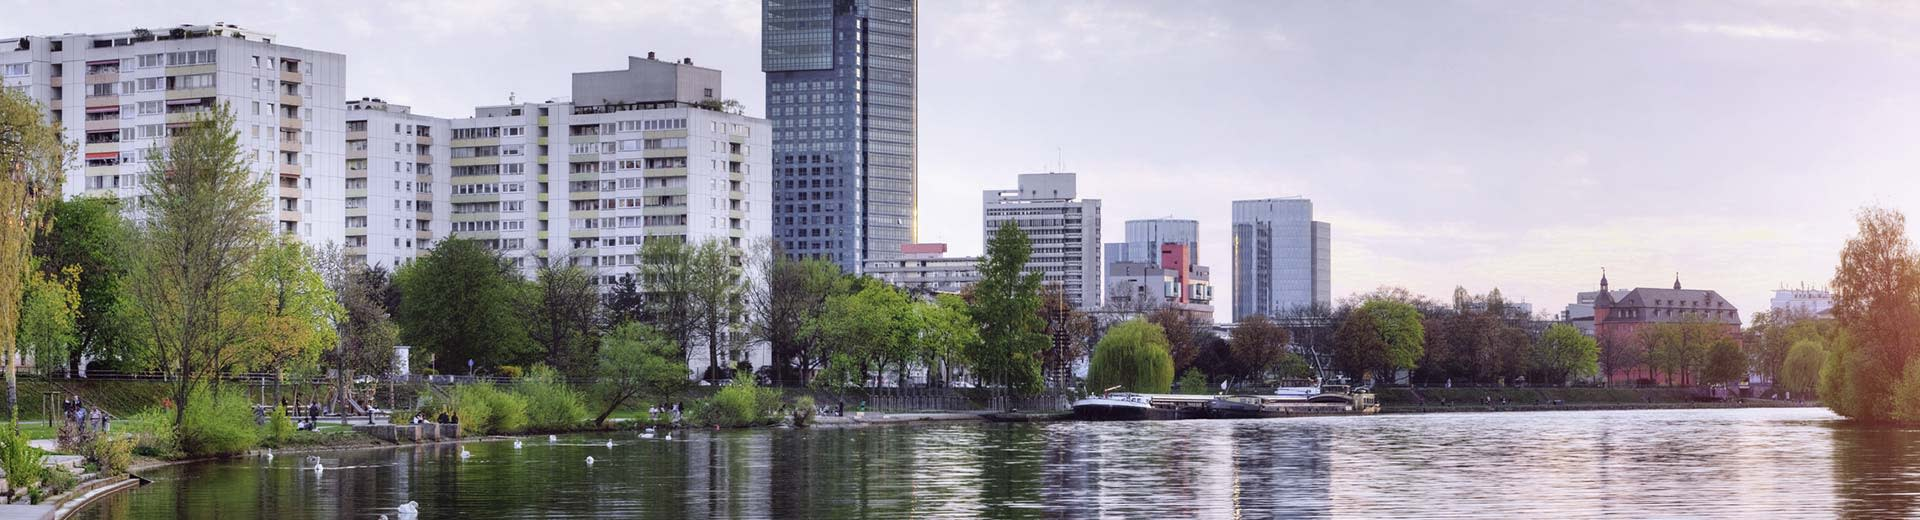 Along the waterfront, Offenbach's high-rise apartment buildings dominate the skyline